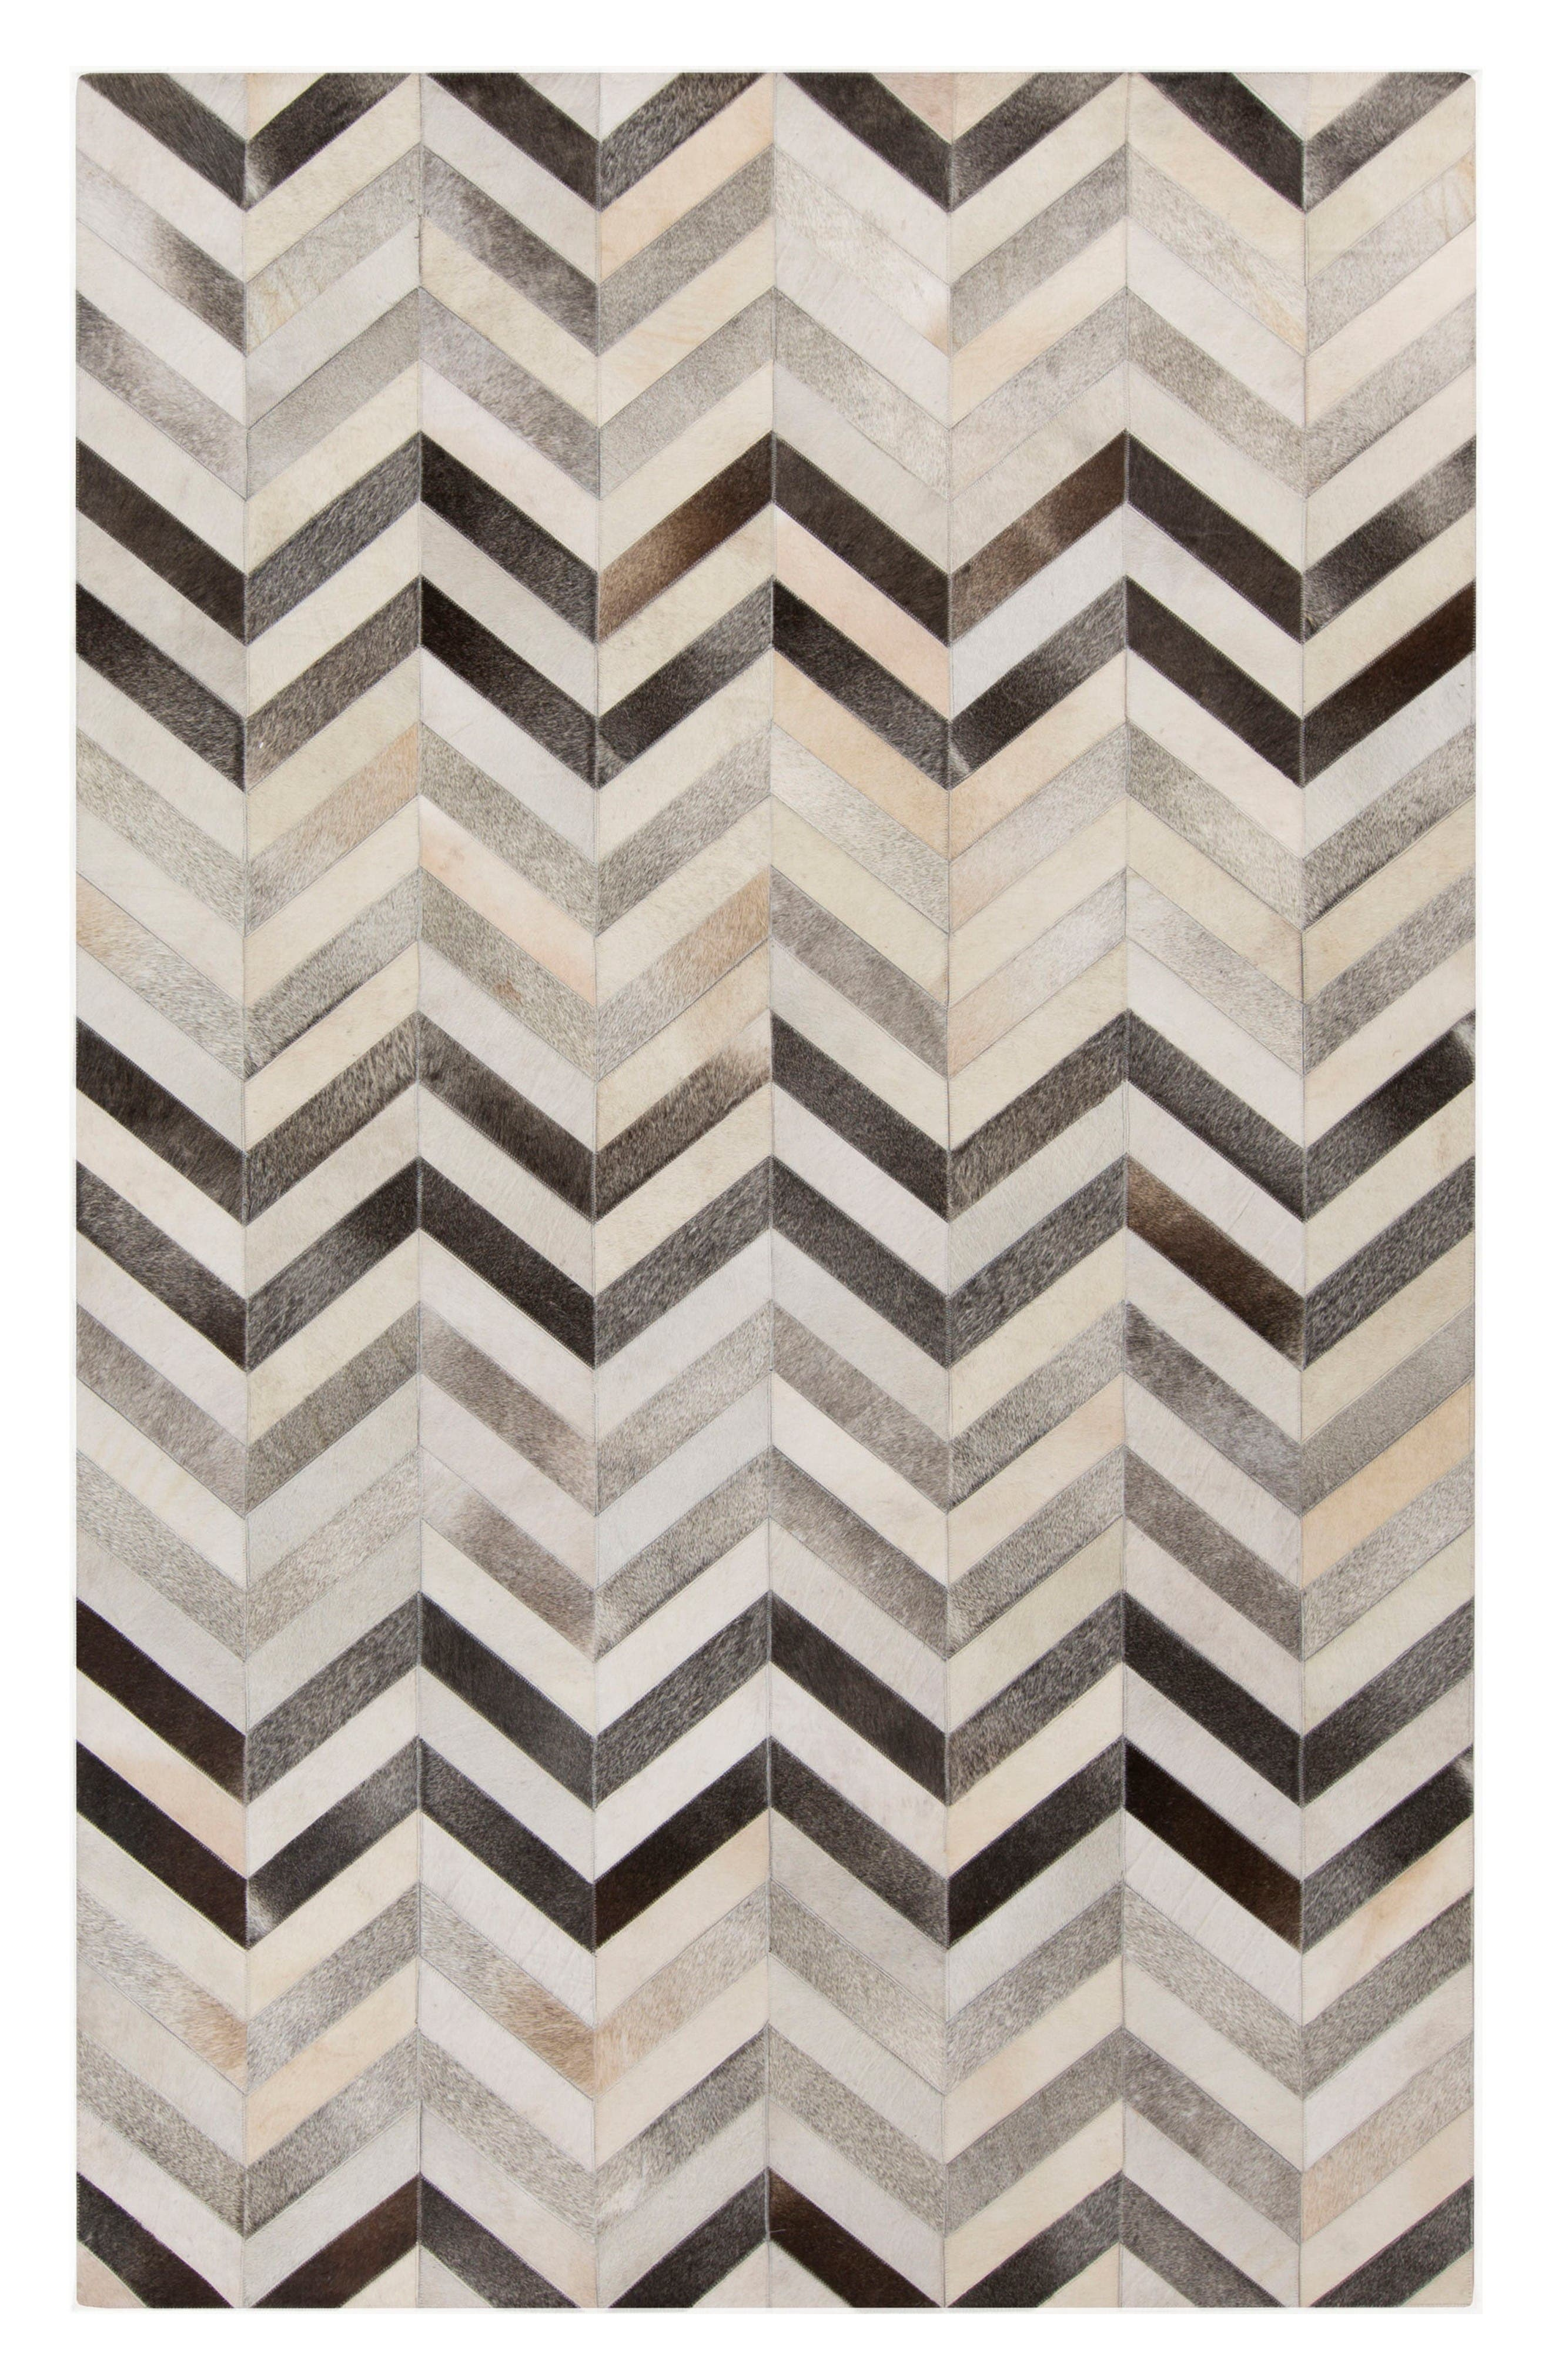 Trail Chevron Hand Stitched Calf Hair Rug,                         Main,                         color, Ivory/ Grey